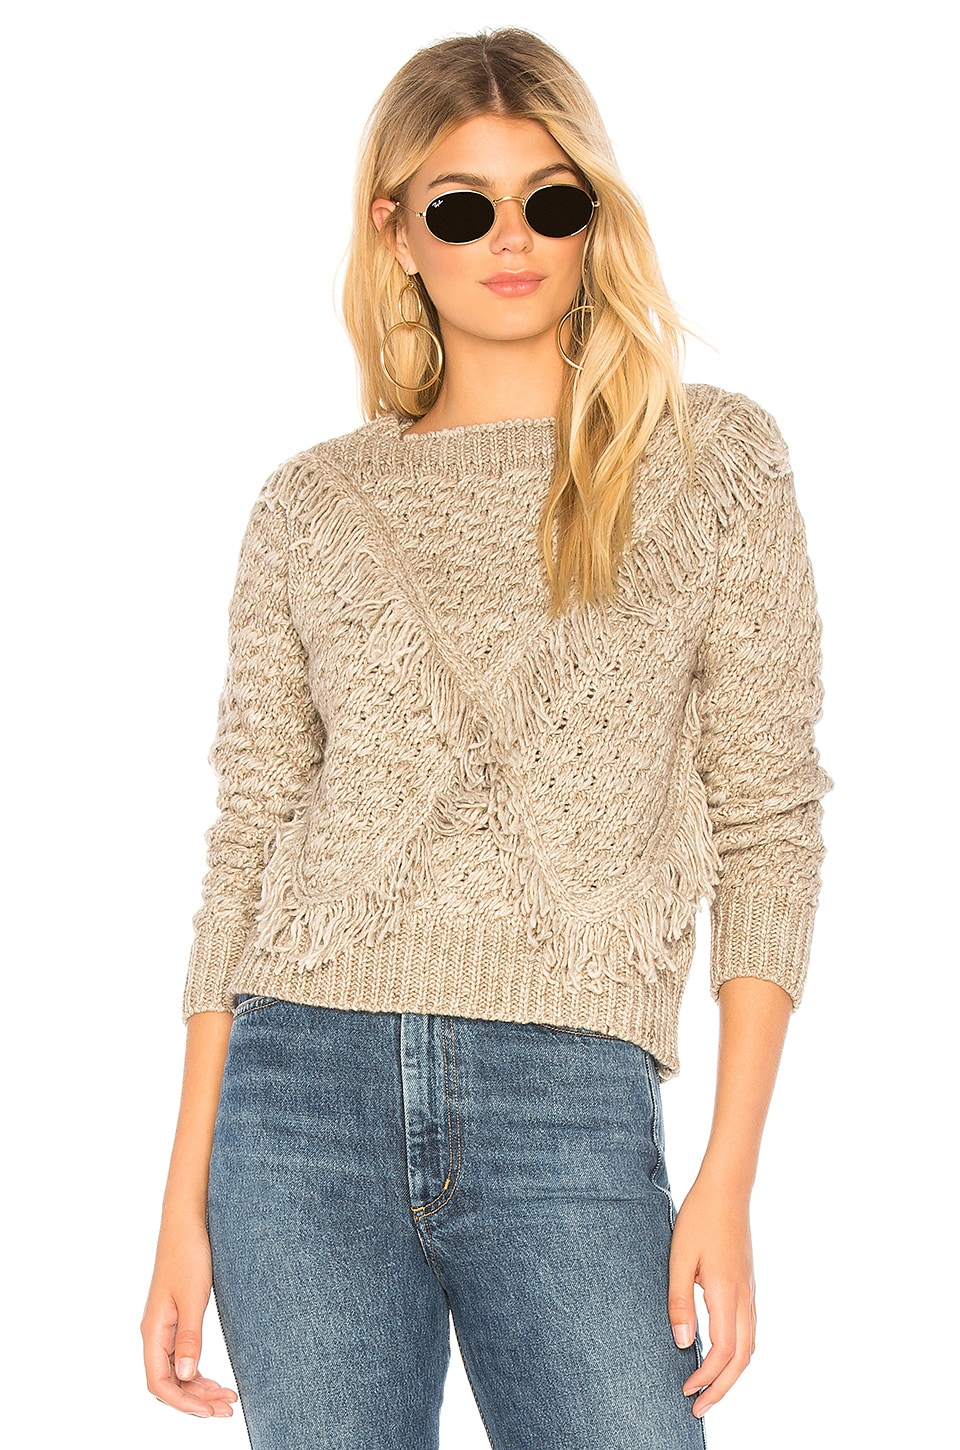 MAJORELLE Cable Knit Sweater in Grey